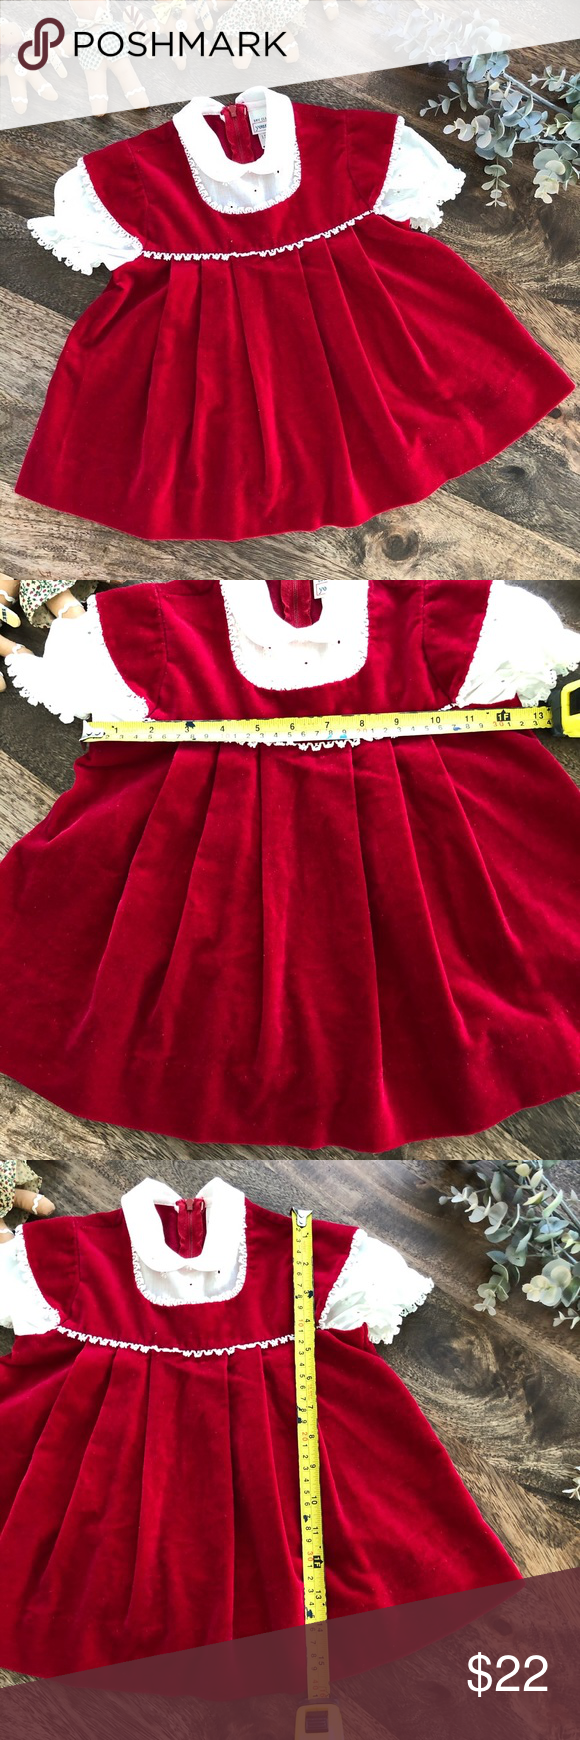 Vintage Red Dress By Youngland Size 2t Vintage Red Dress Vintage Dresses Casual Red Dress [ 1740 x 580 Pixel ]